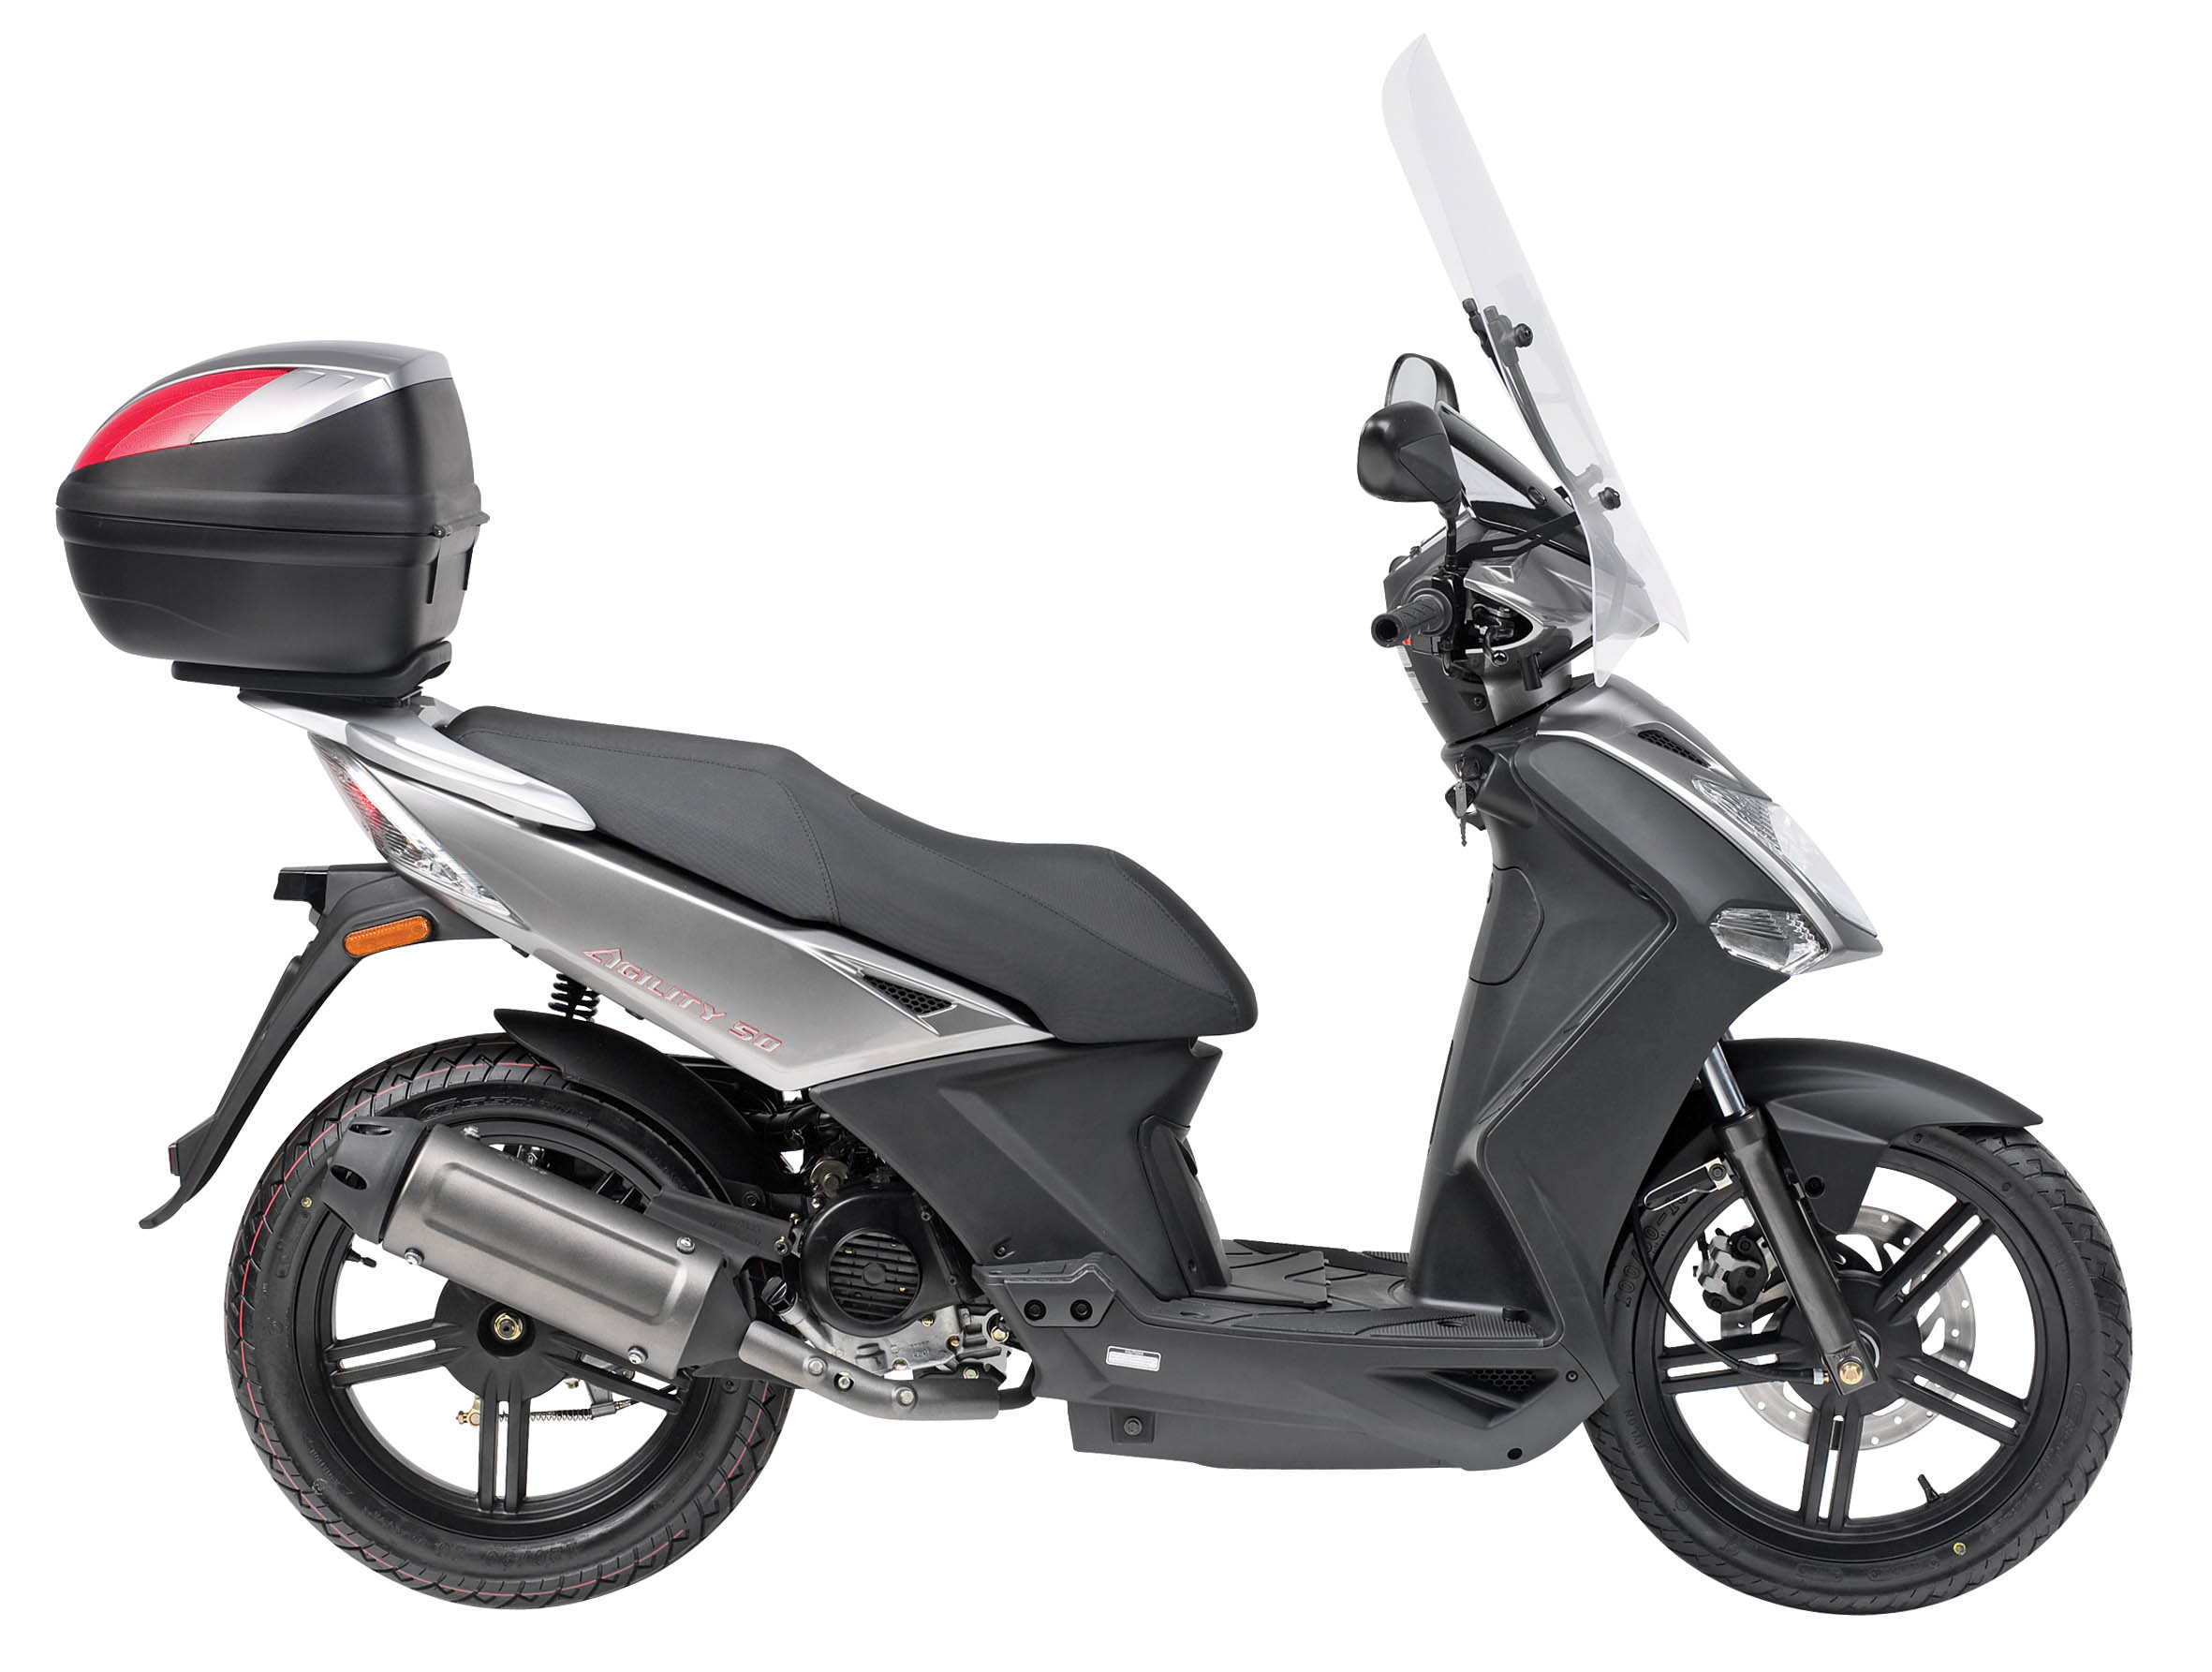 Kymco Agility City 125 images #101821